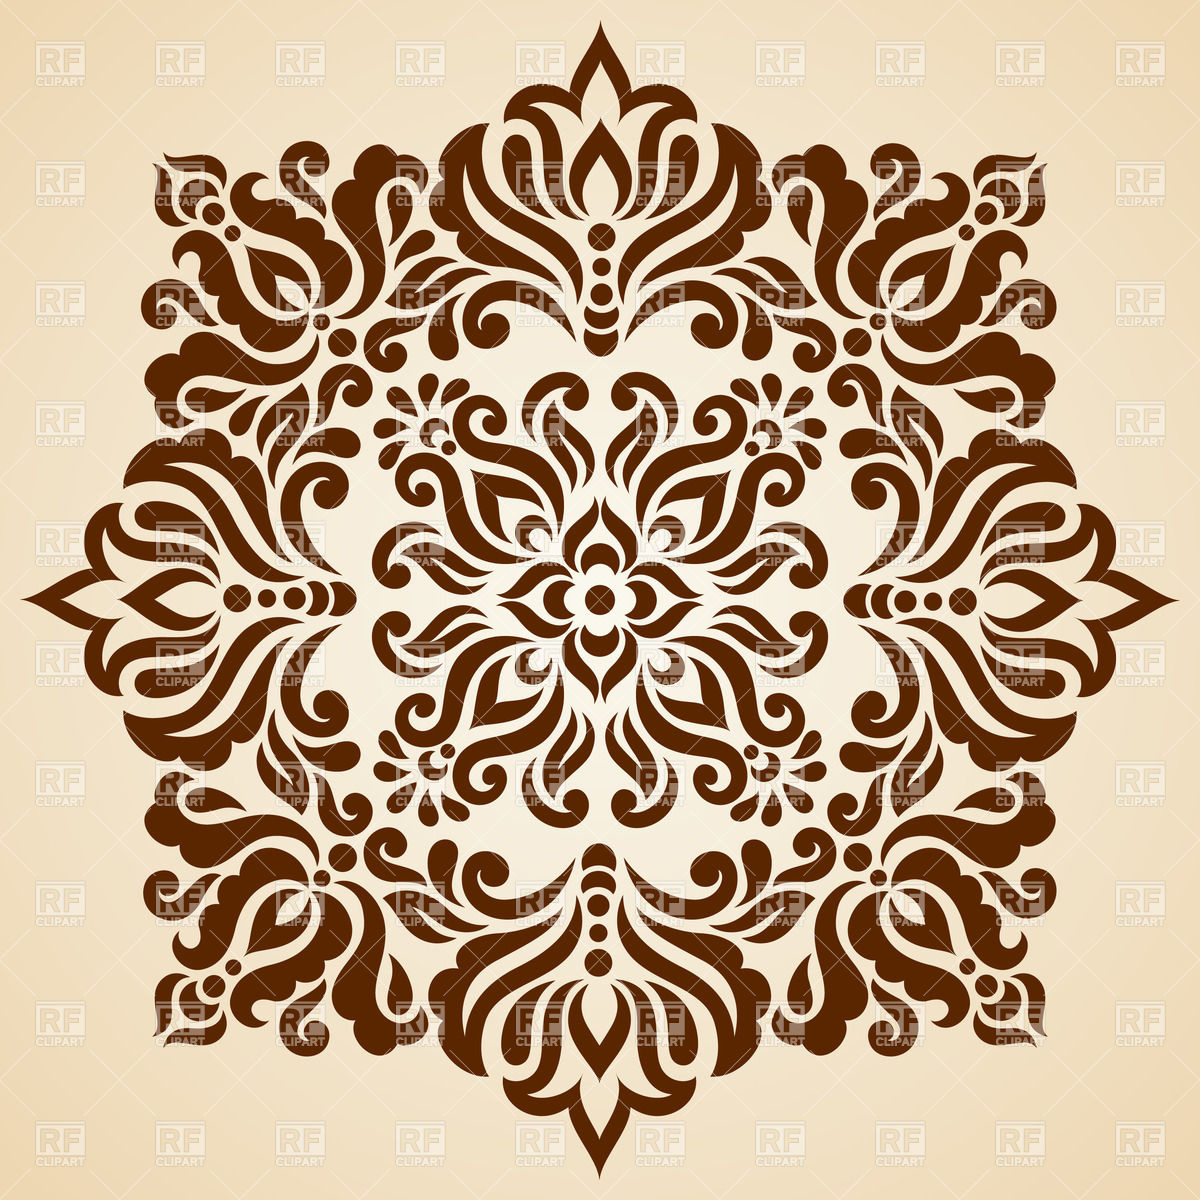 1200x1200 Brown Square Made Of Abstract Floral Mosaic Vector Image Vector